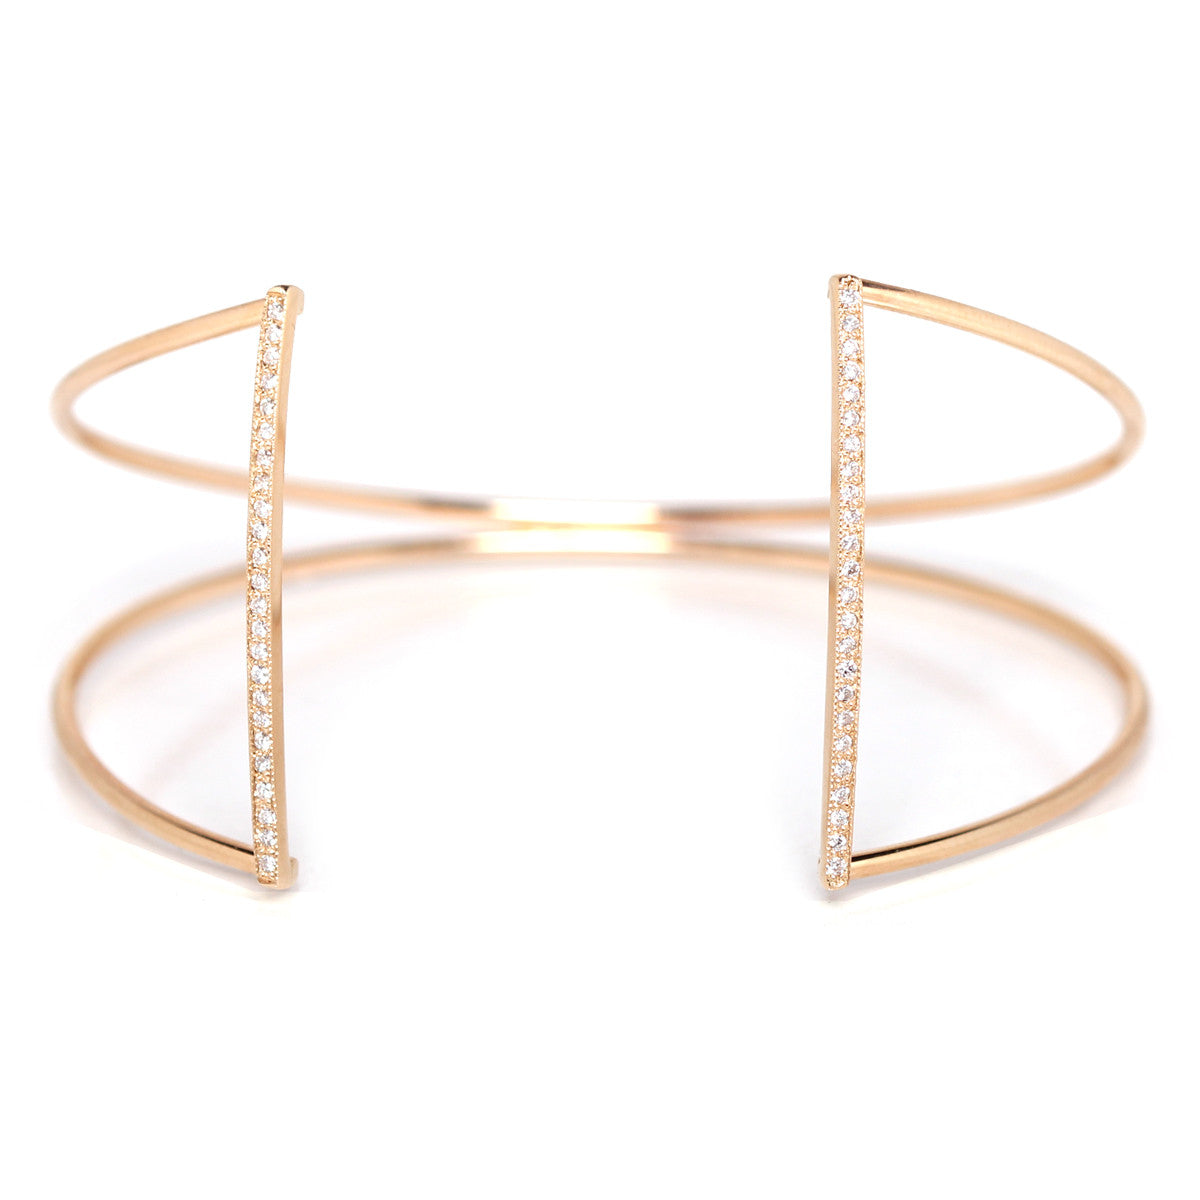 14k pave open bar cuff